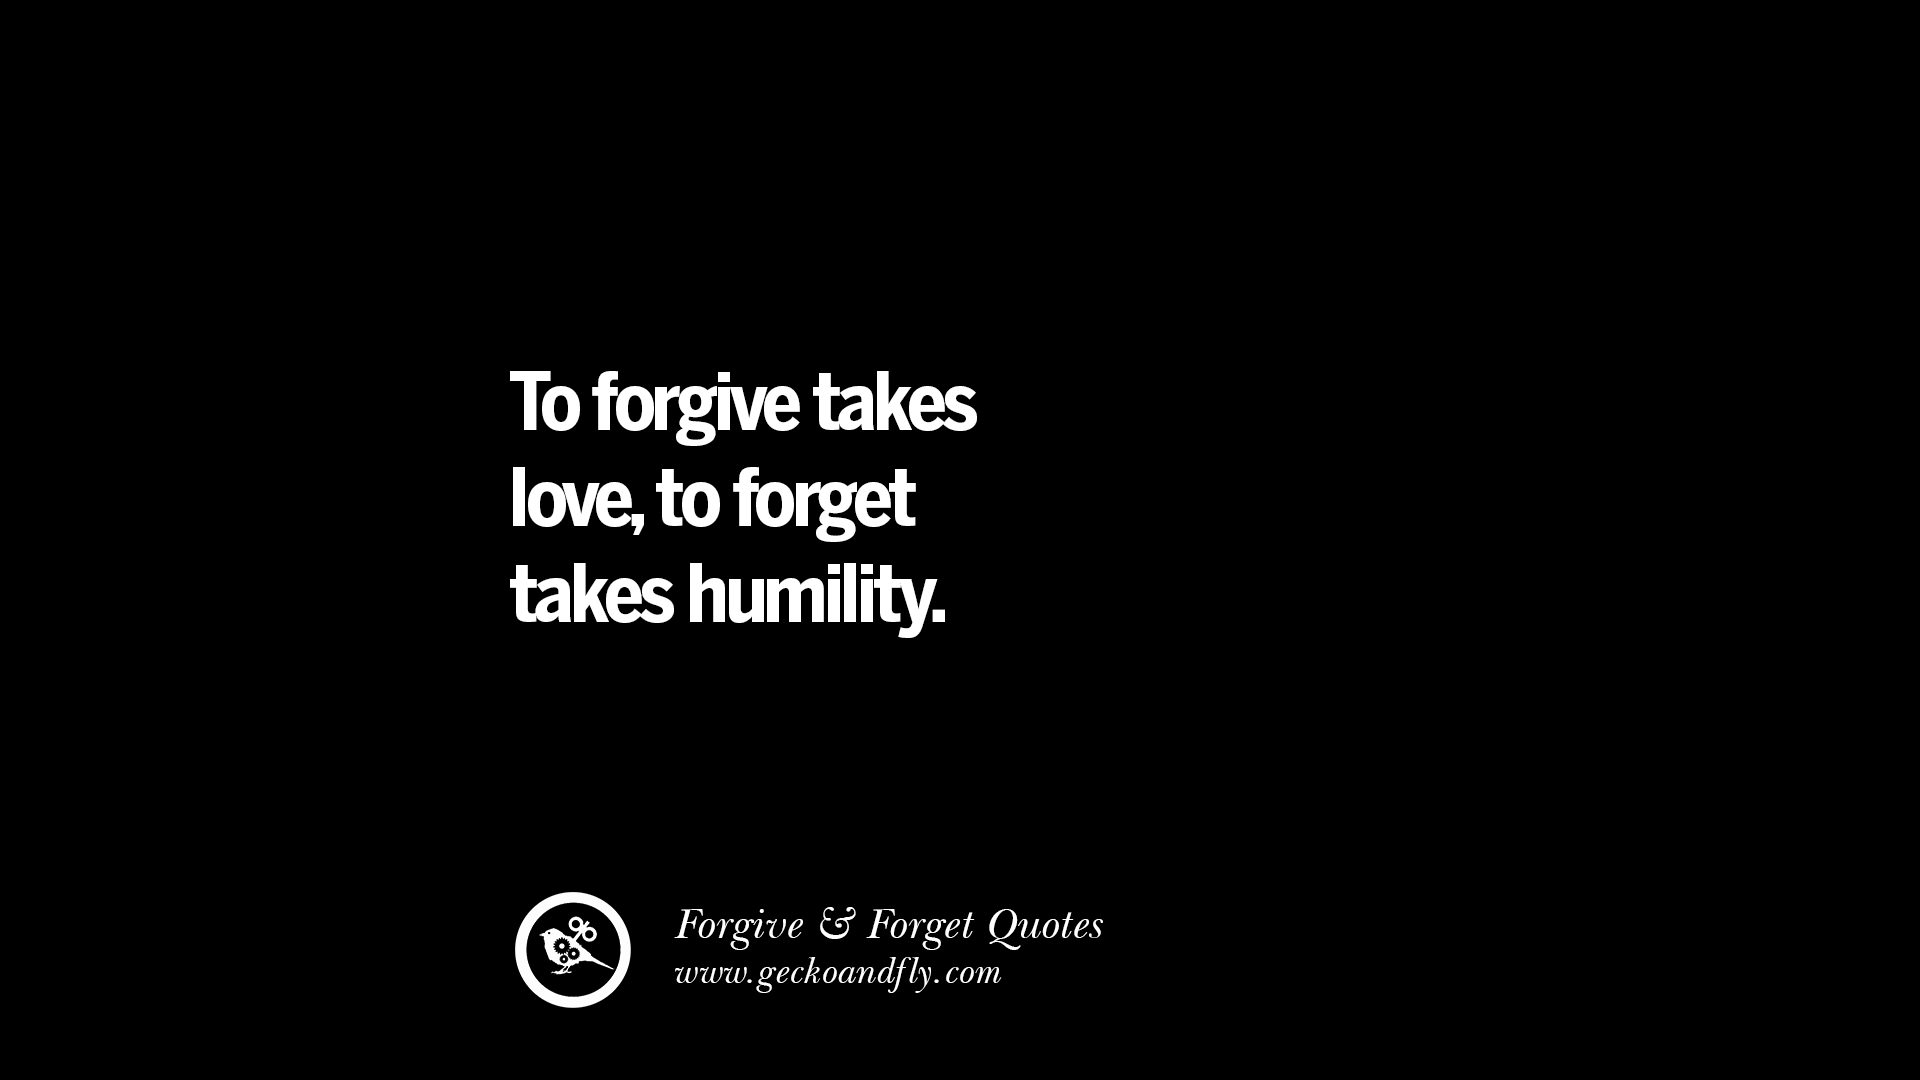 to forgive is to forget